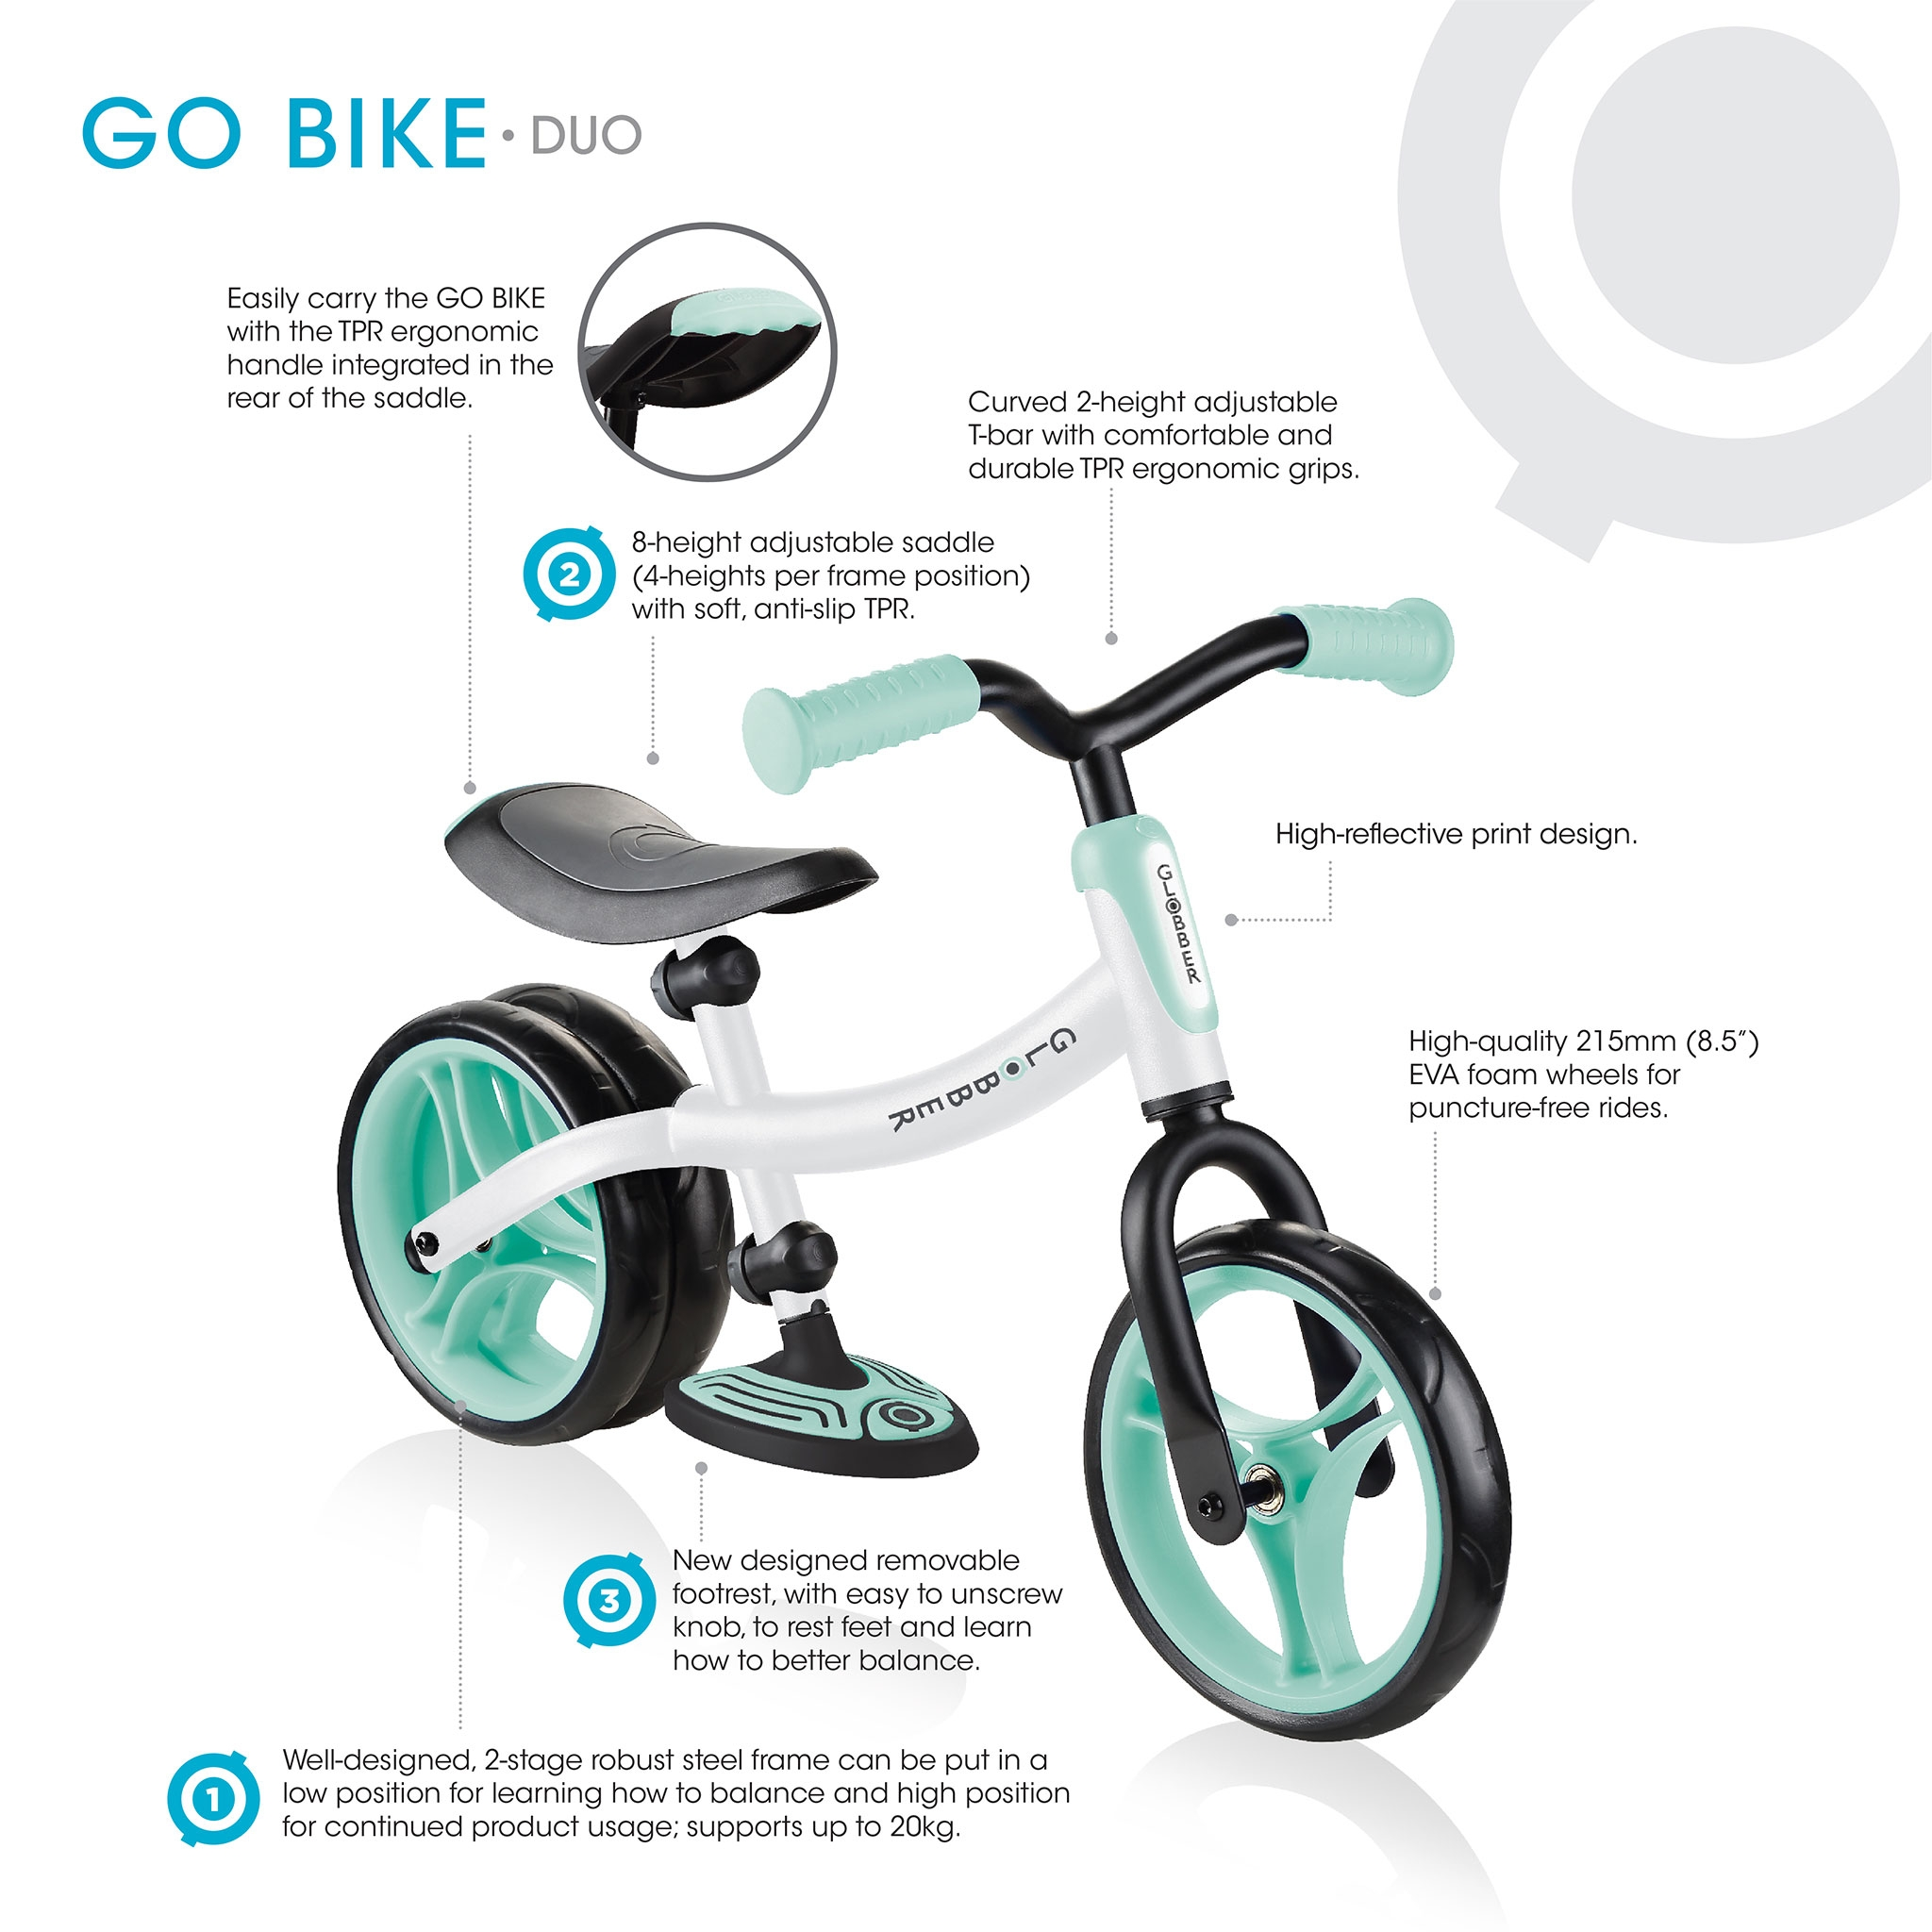 GO-BIKE-DUO-best-toddler-balance-bike-for-girls-and-boys-aged-2-to-5-with-dual-rear-wheel